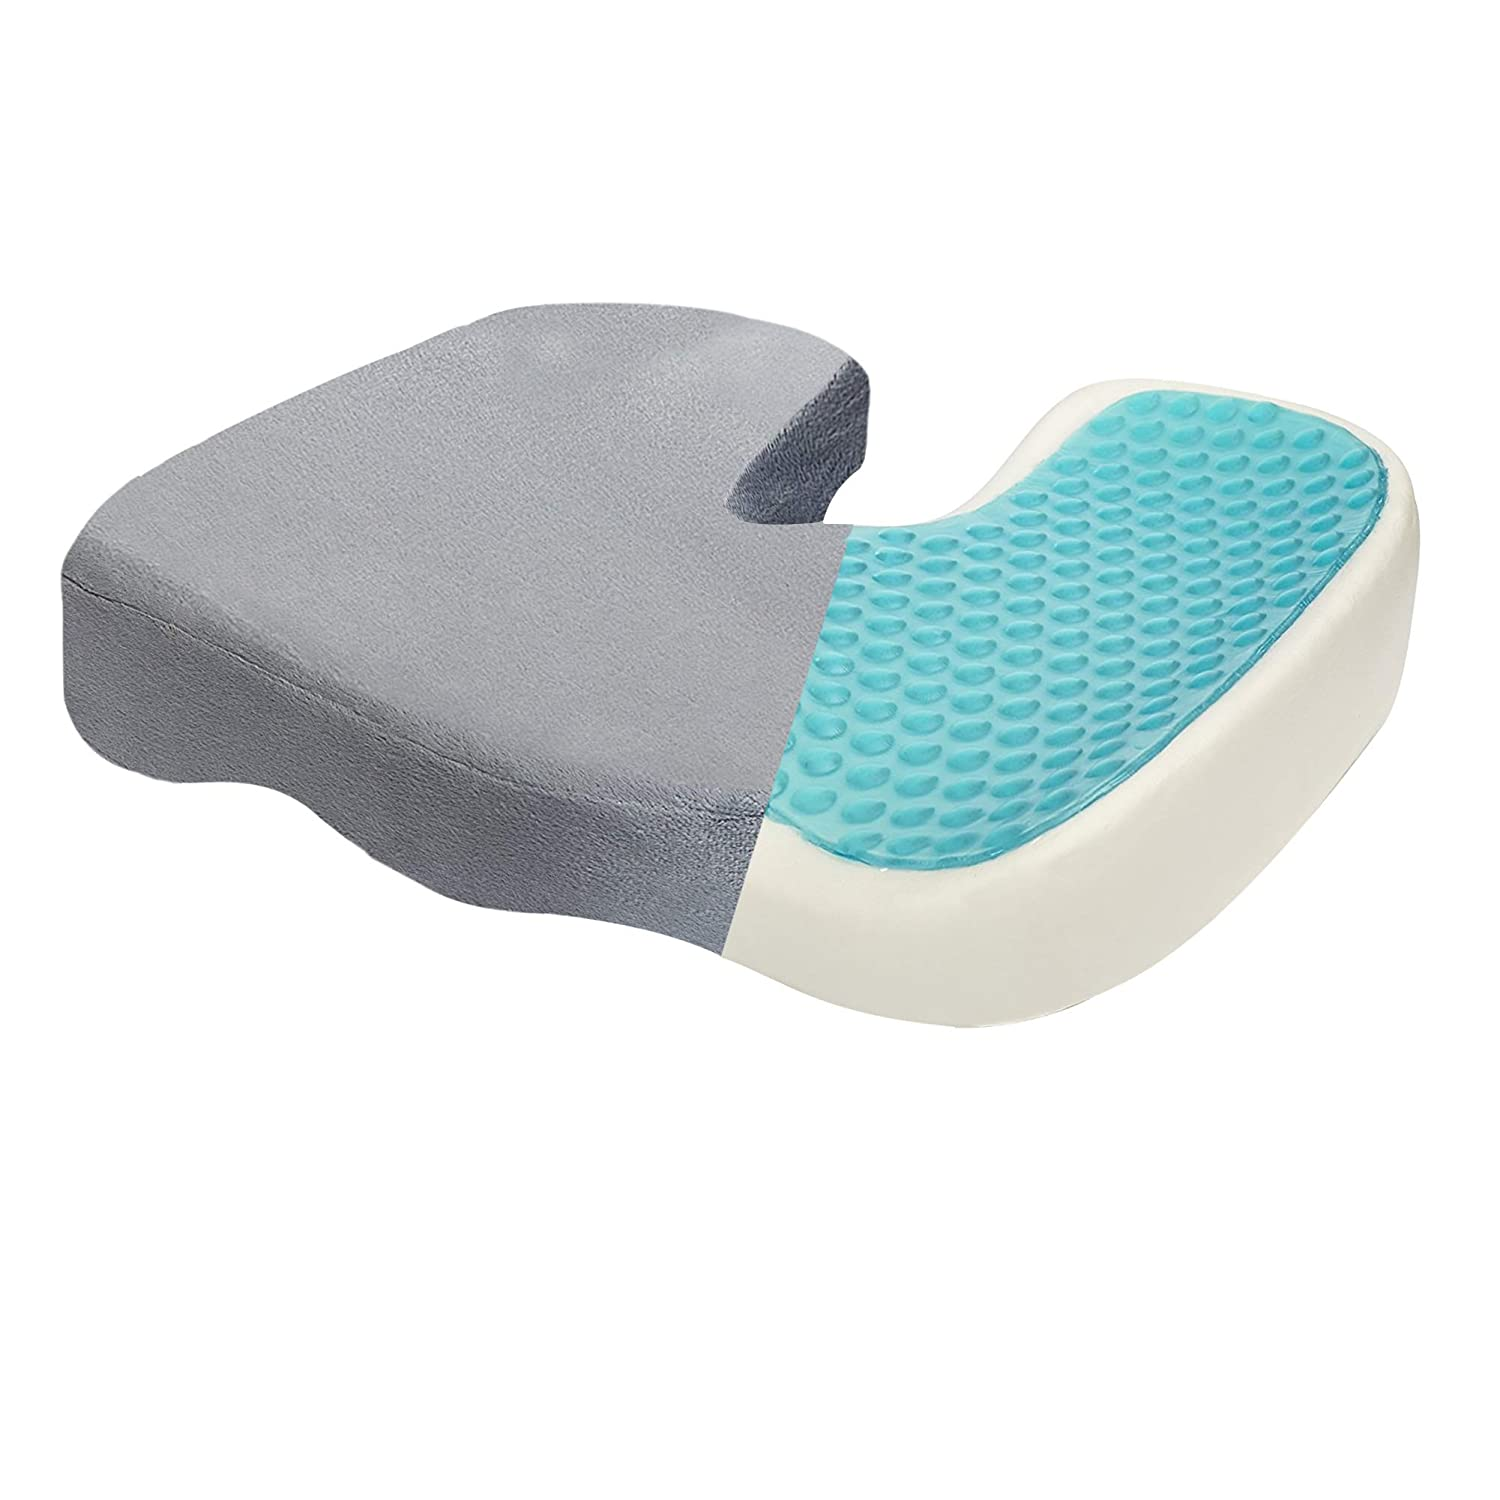 Dr. Flink Coccyx Seat Cushion Tailbone Pain Relief Pillow, Cool Gel-Enhanced - Memory Foam, Orthopedic Quality Comfort & Large Designed, Support & Relives Back & Sciatica, for Car Home, Office, Chair